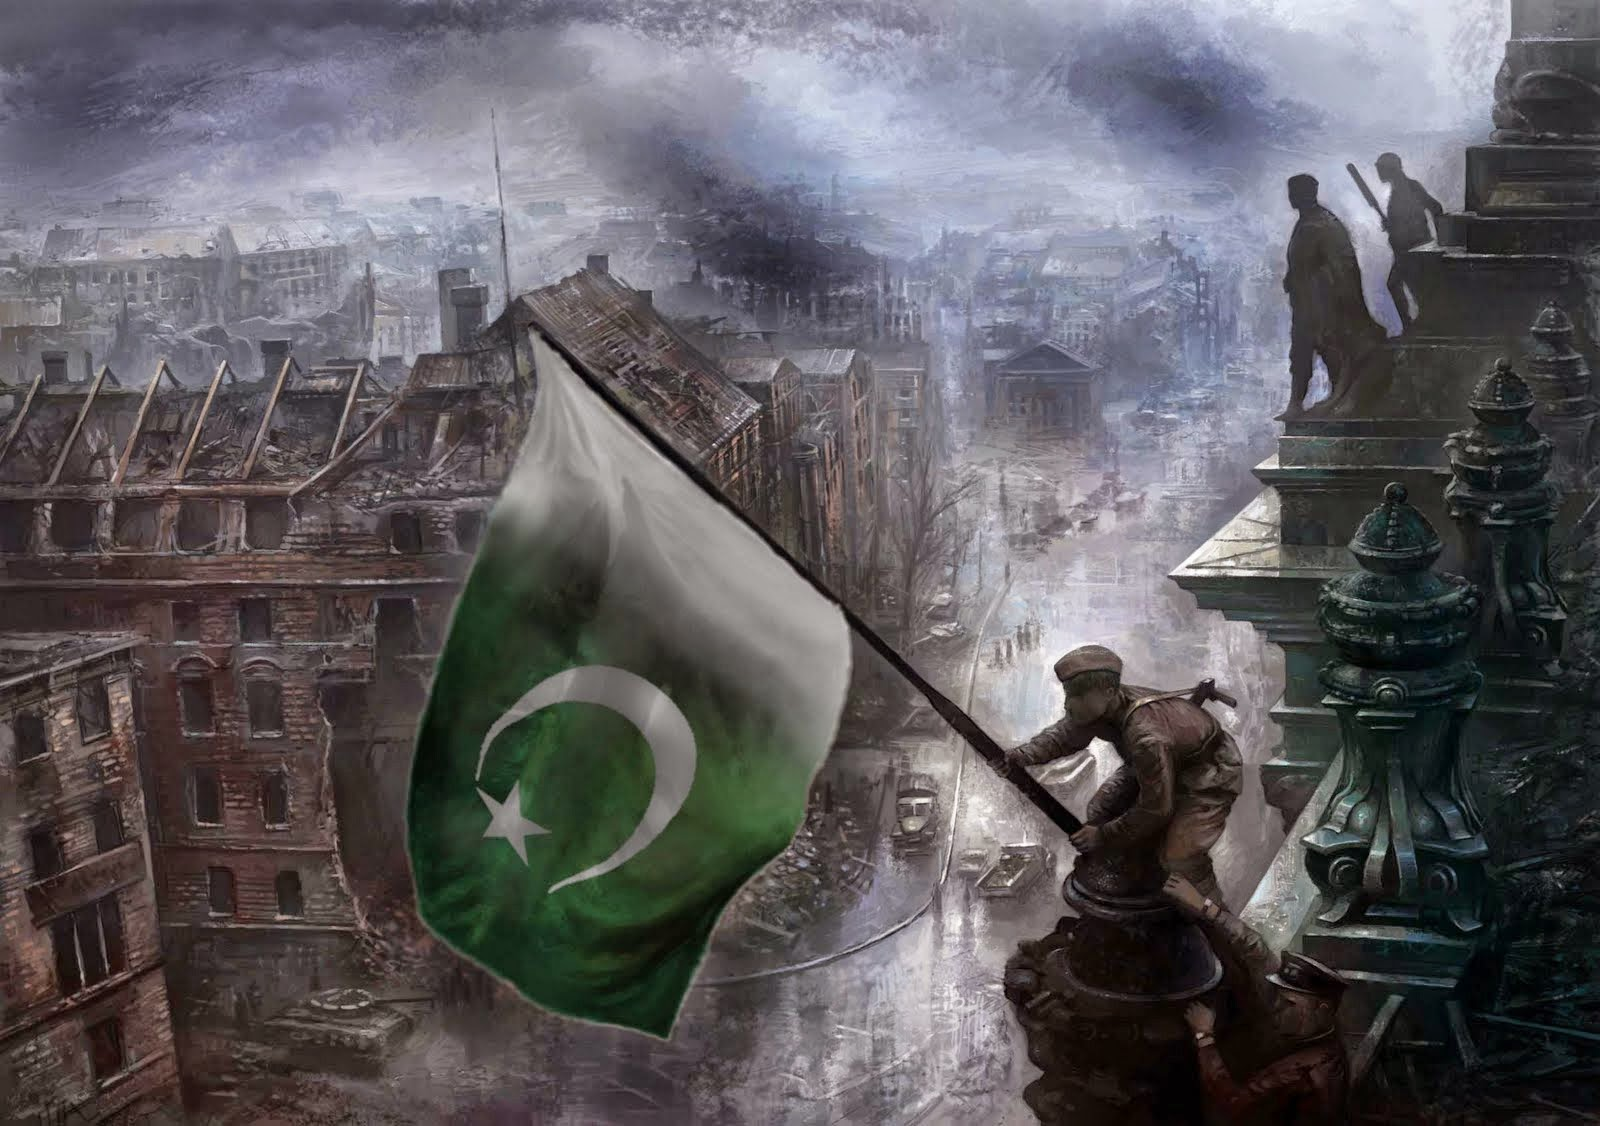 14TH AUGUST 1947, THE BLESSED DAY.